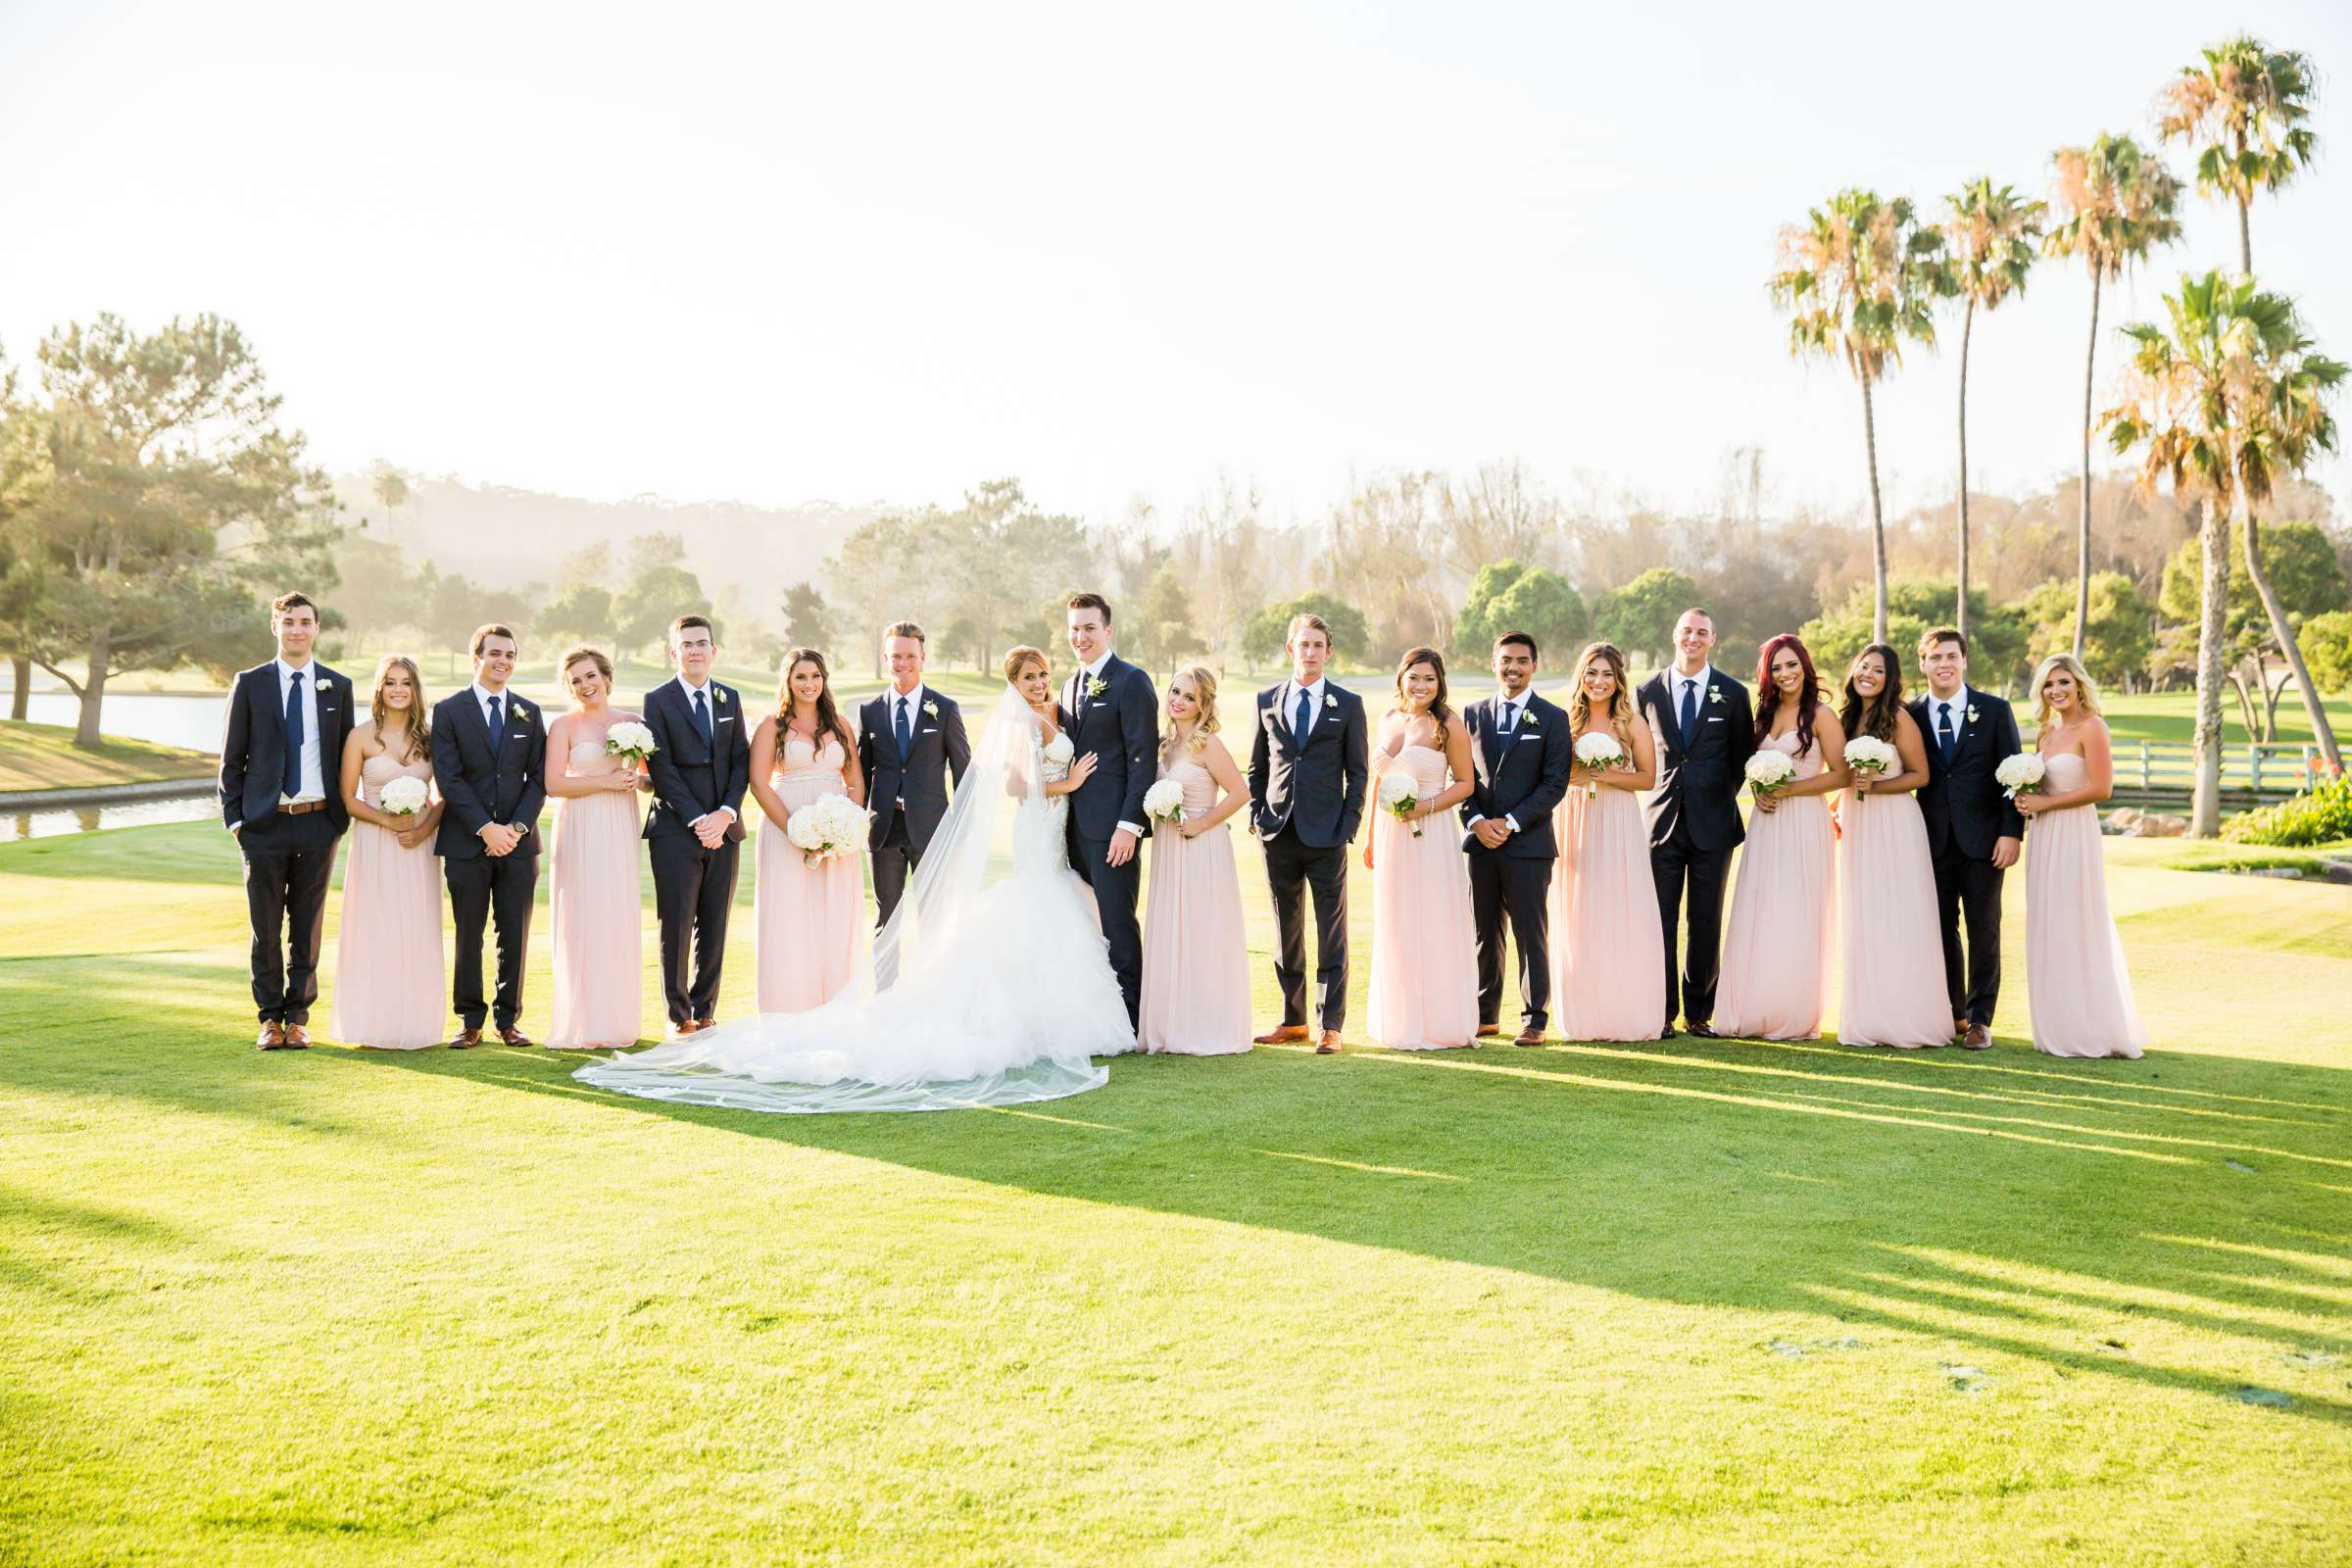 Fairbanks Ranch Country Club Wedding coordinated by Monarch Weddings, Gabriella and Kyle Wedding Photo #102 by True Photography